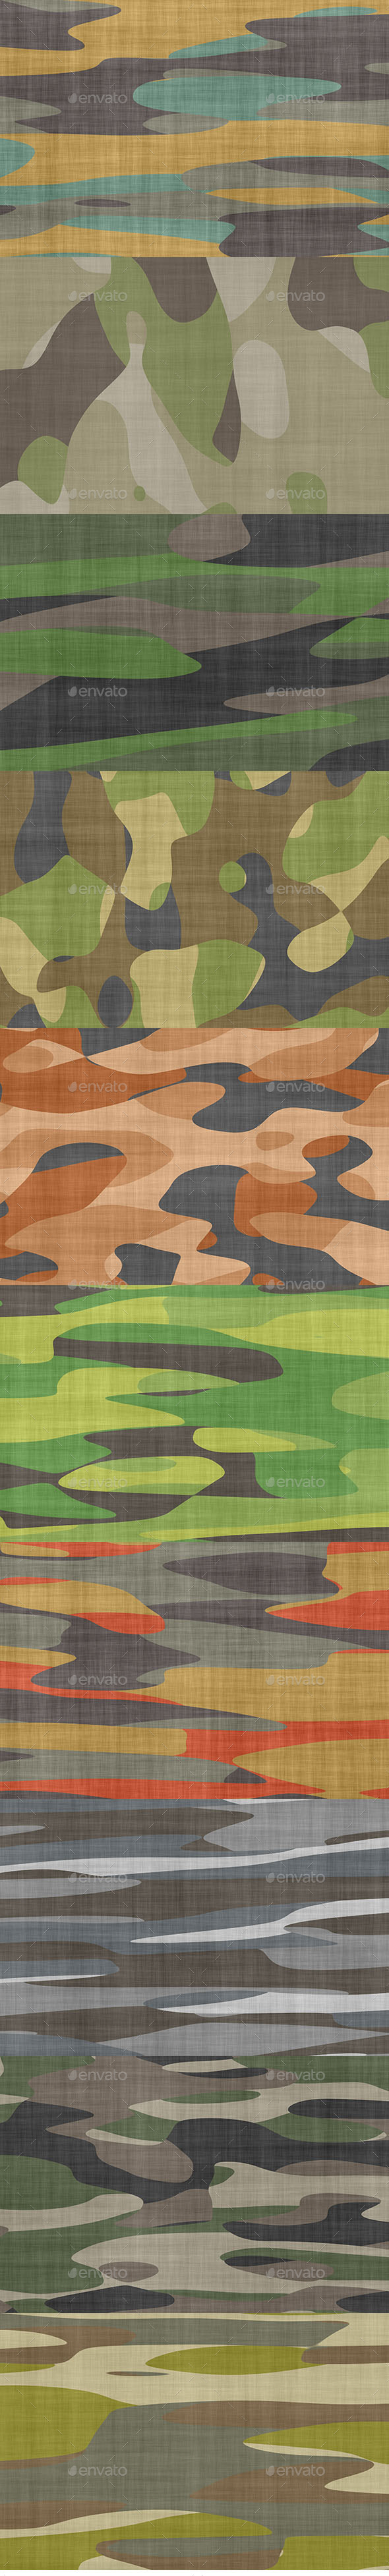 Camouflage Backgrounds - Backgrounds Graphics